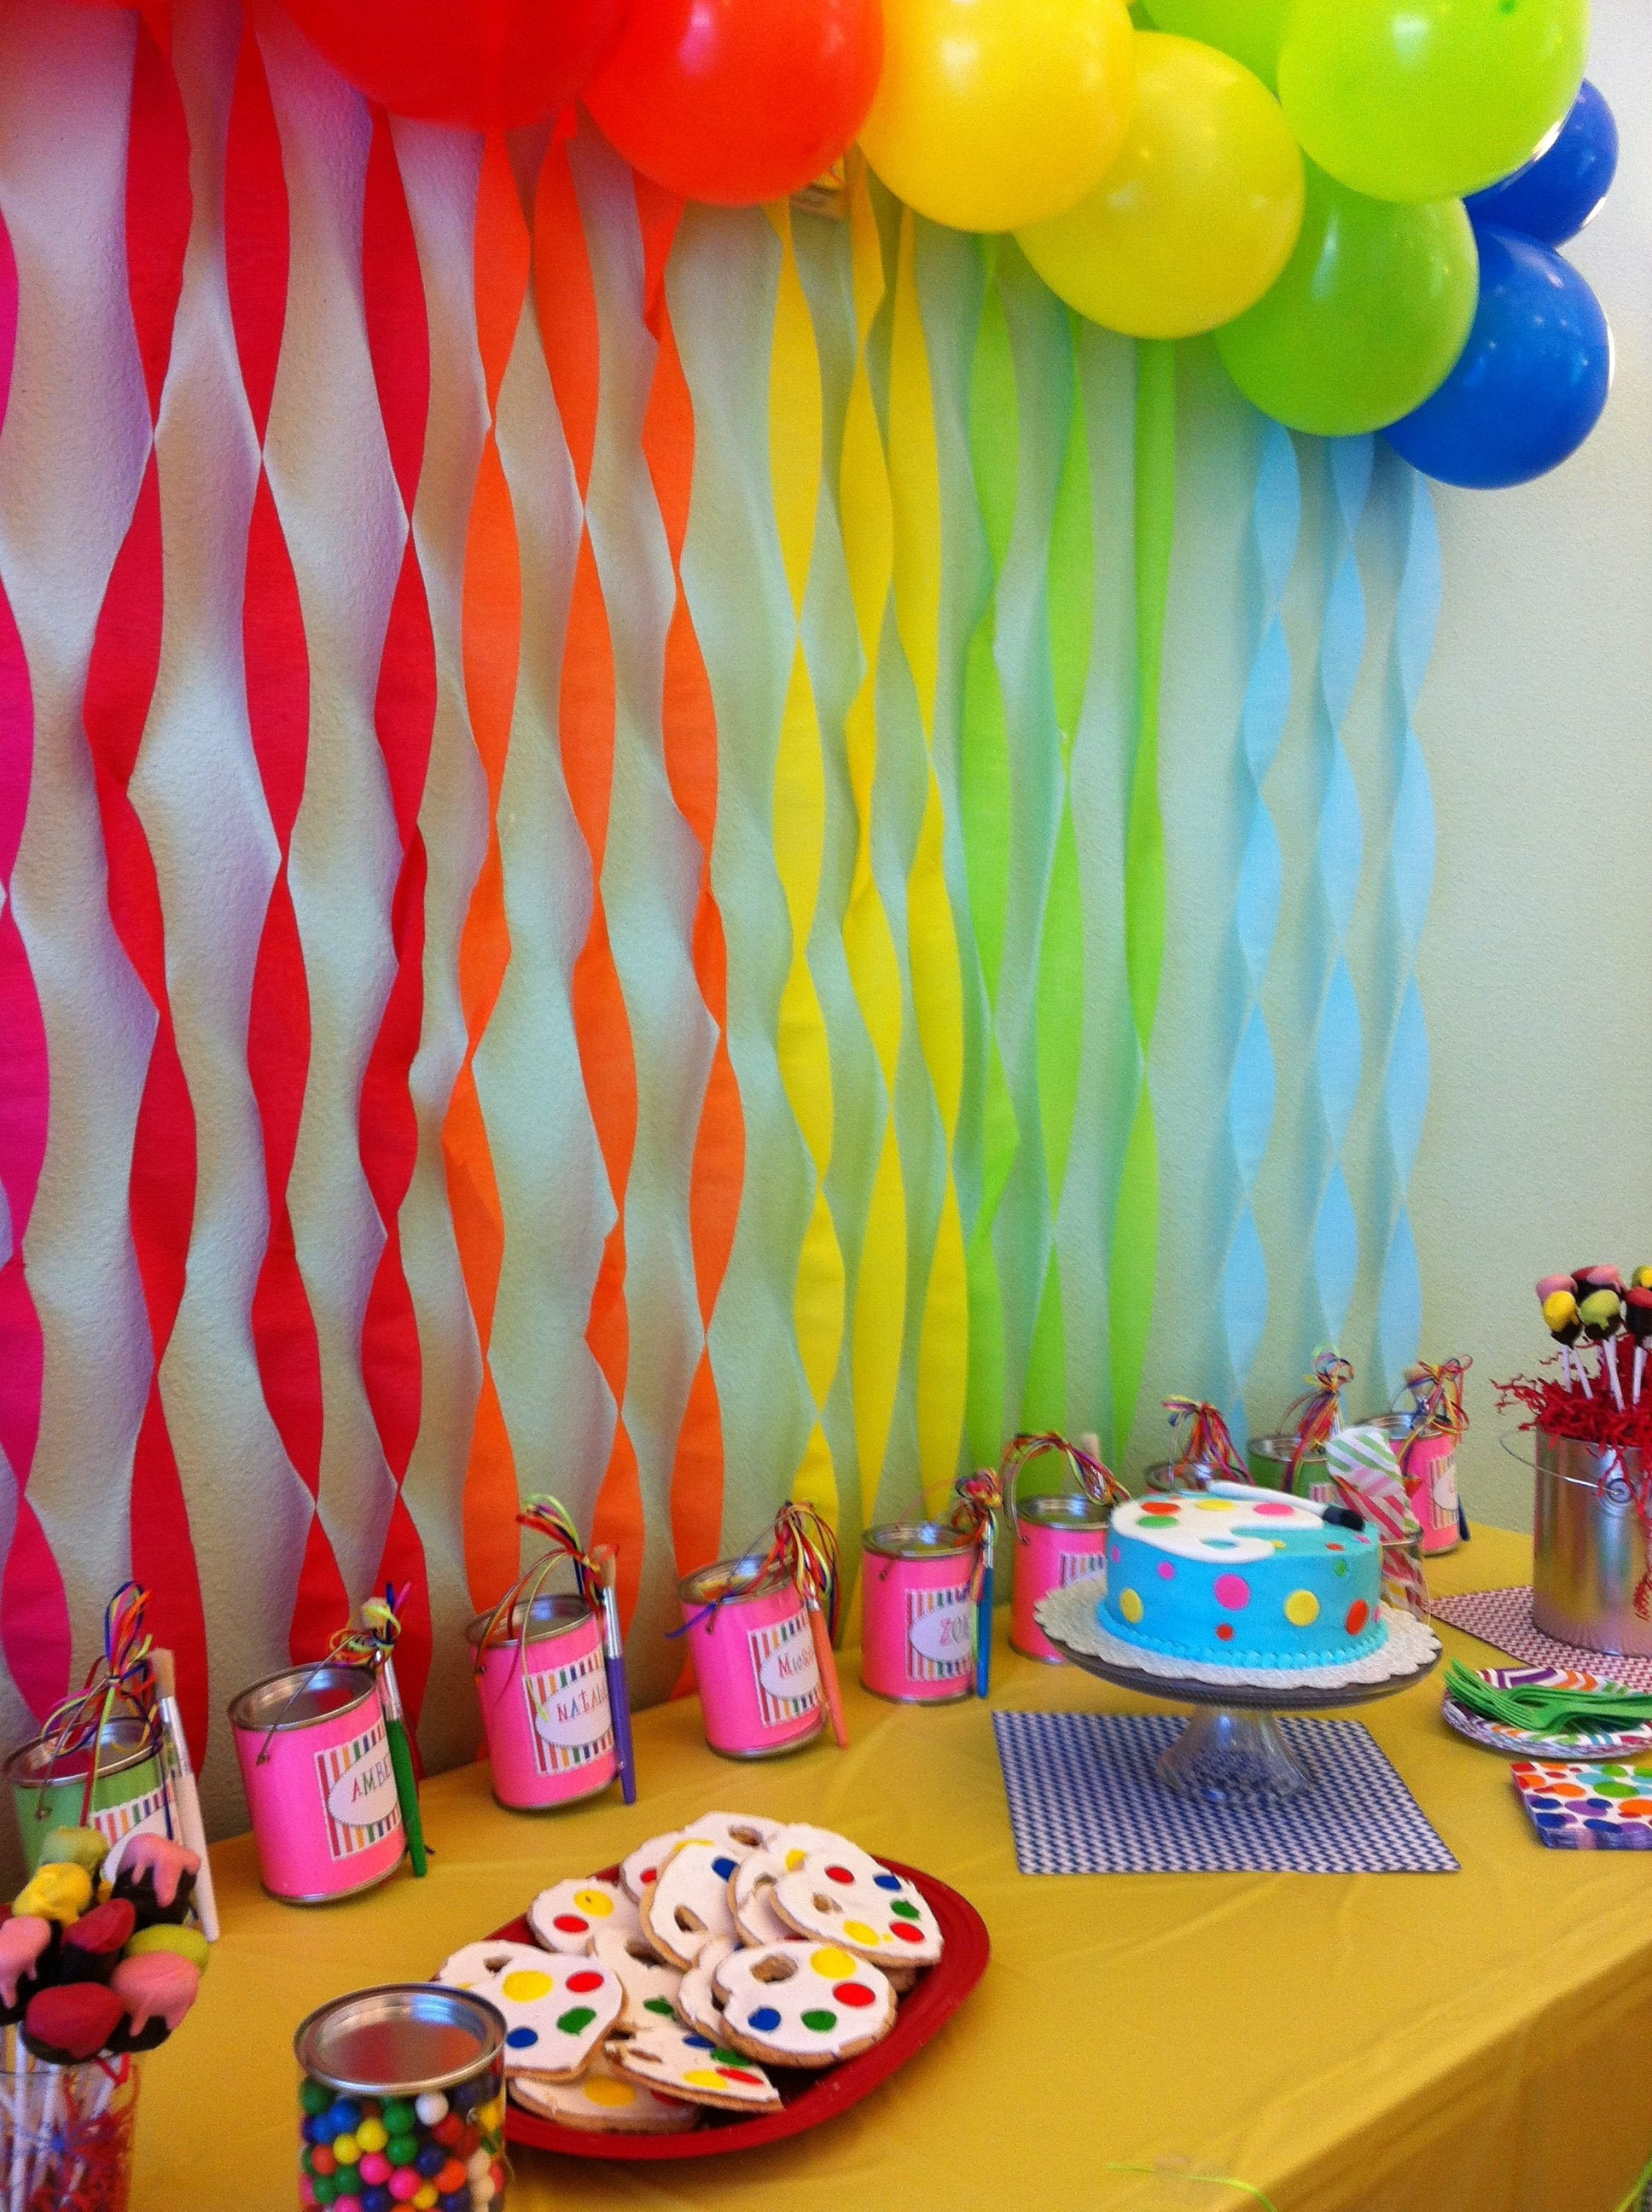 10 Unique 9 Year Old Birthday Party Ideas 8 year old girl birthday art party art party pinterest art 5 2020